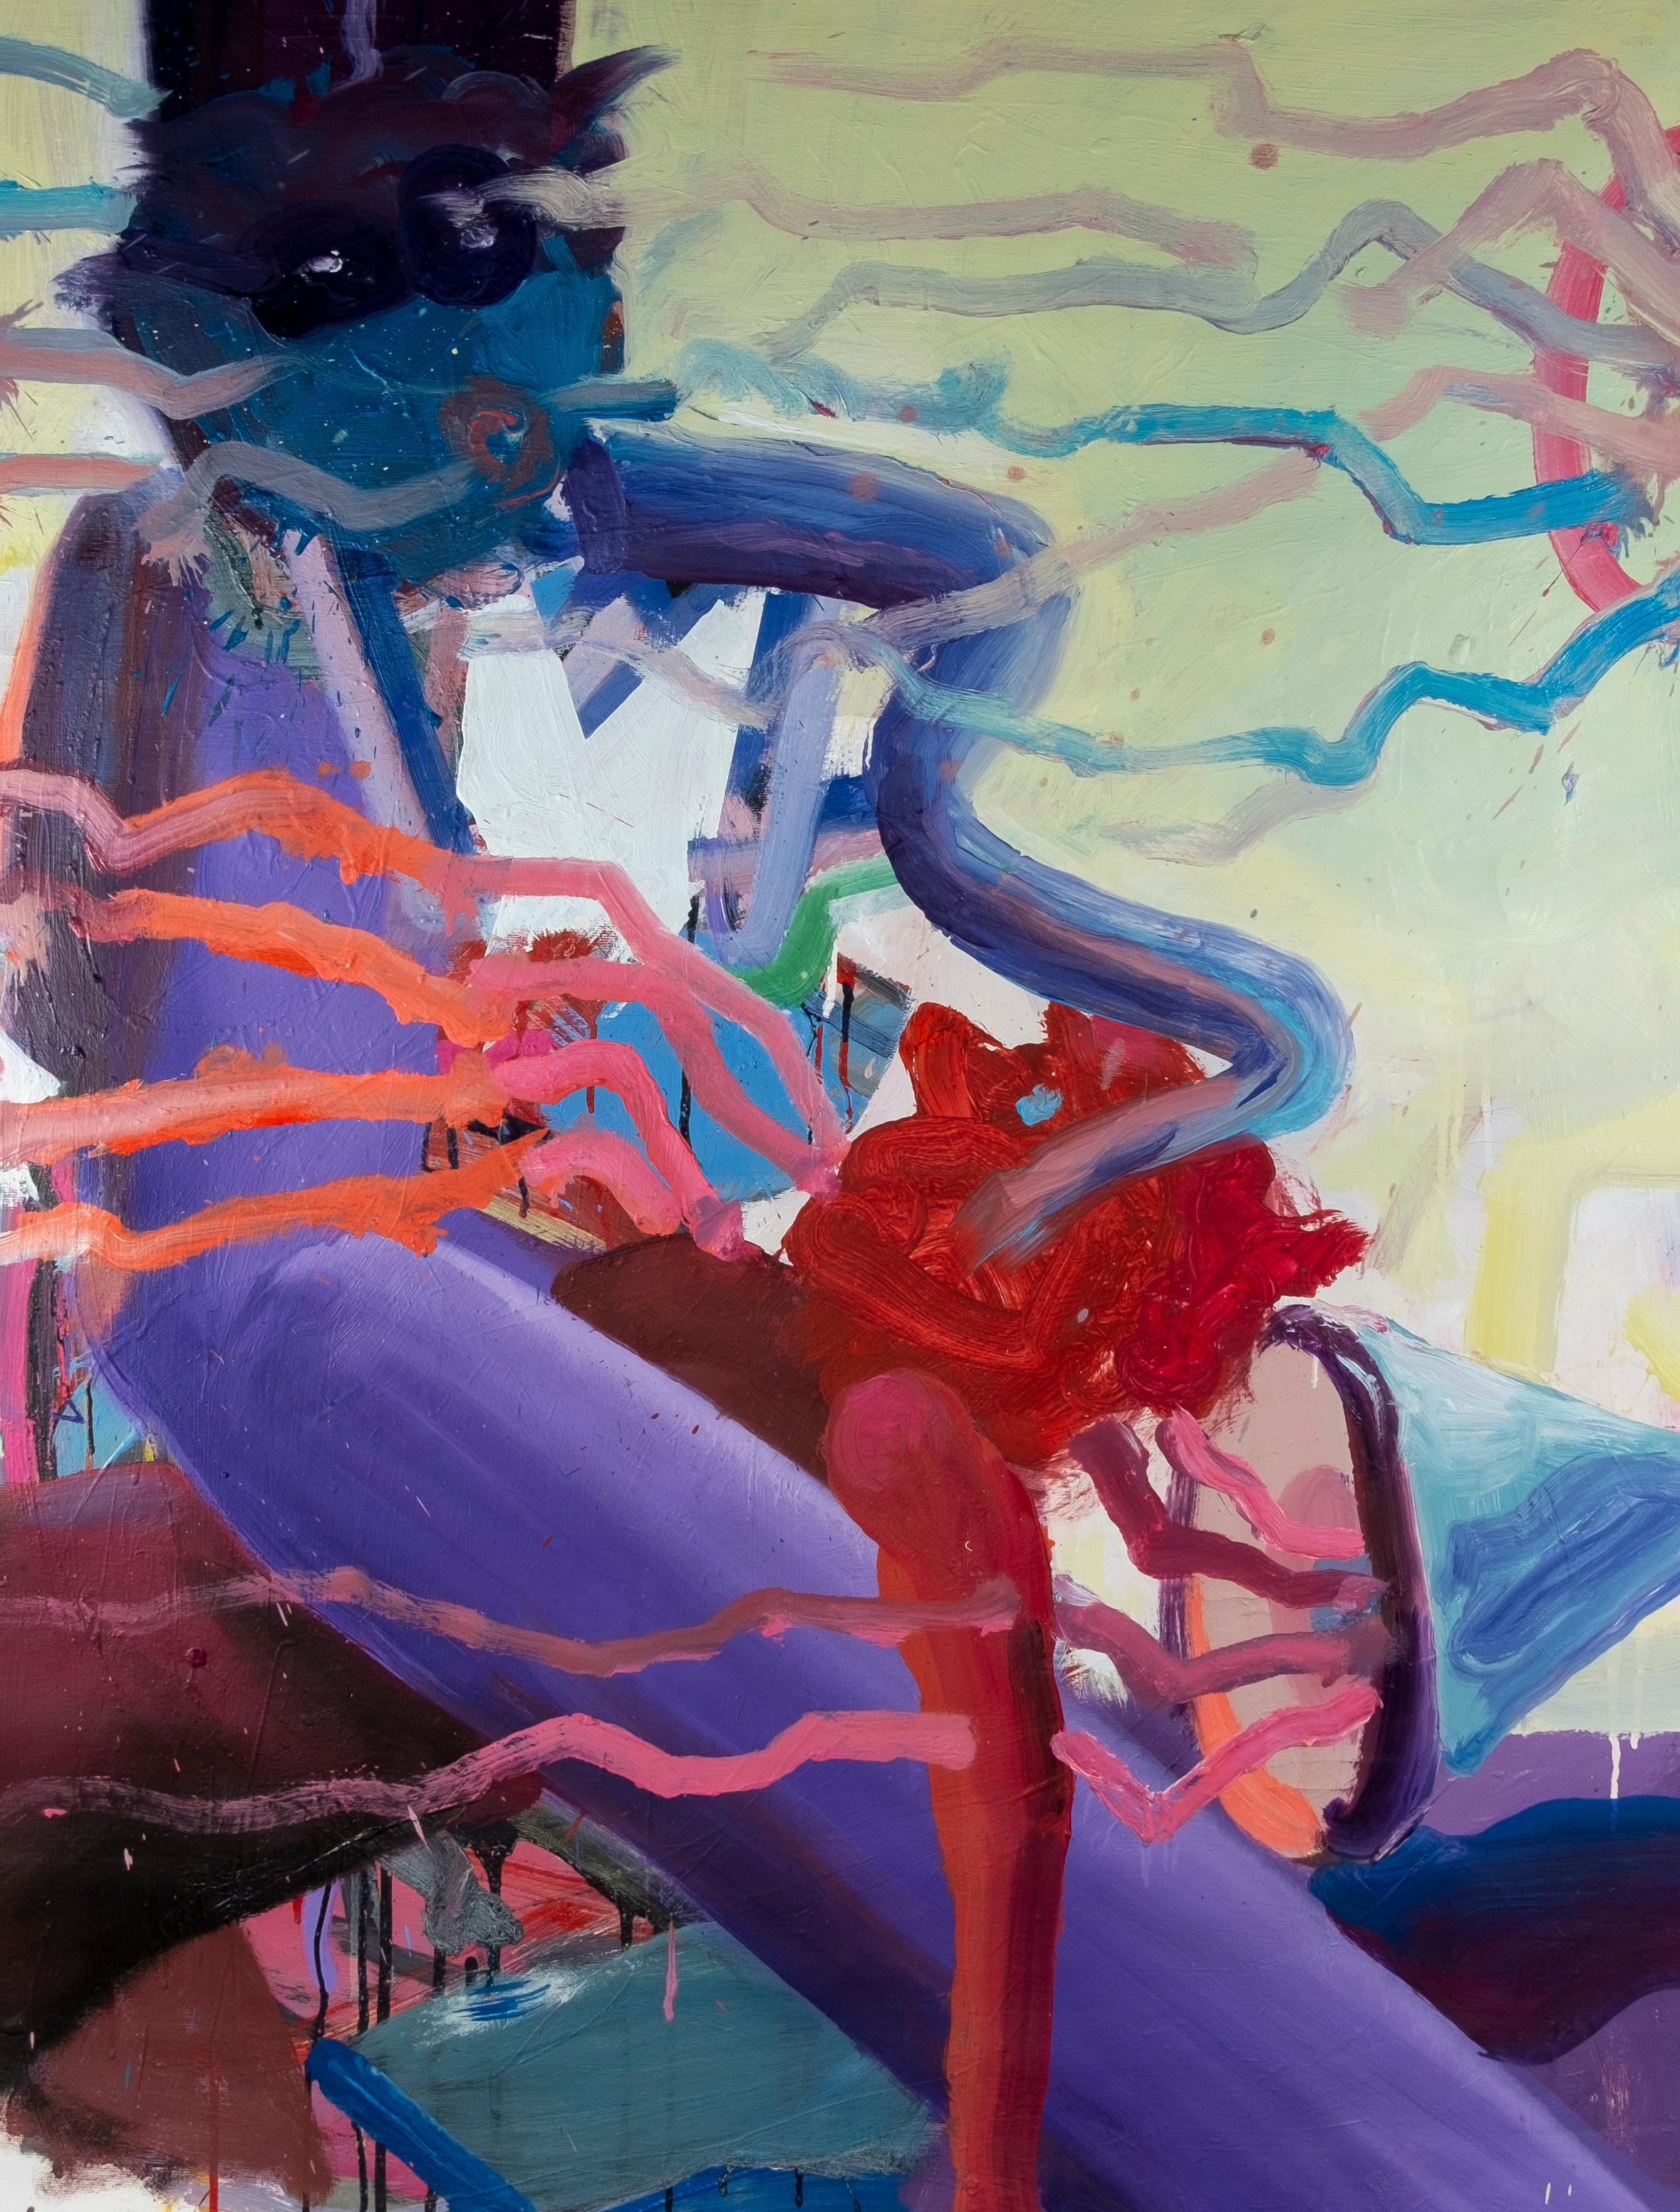 To Loud - Expressionism Painting, Contemporary Figurative Oil Painting